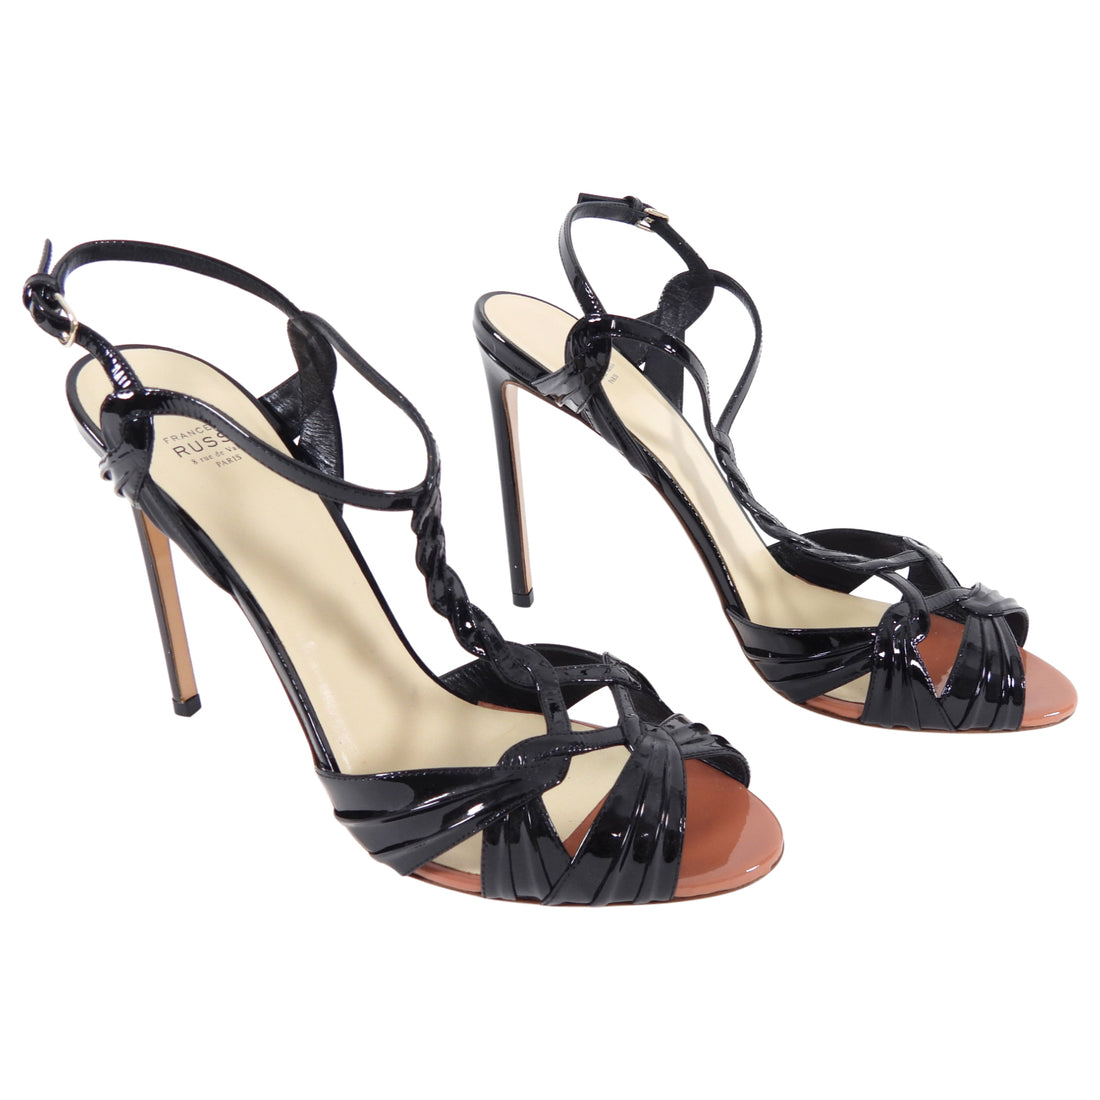 Franco Russo Black Patent Strappy Sandals Heels - 41